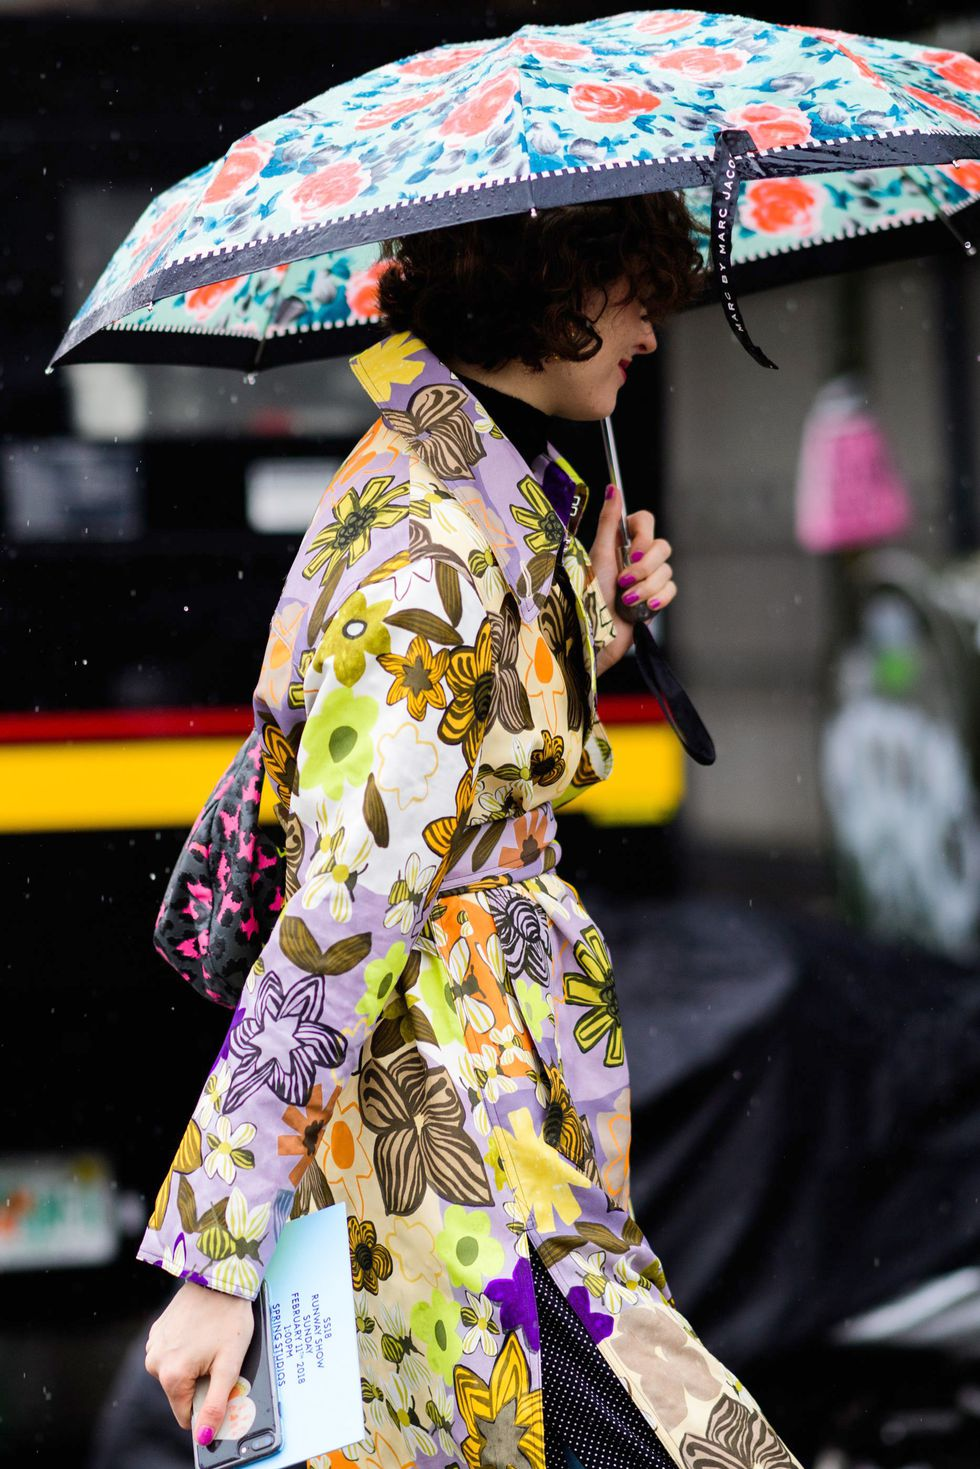 rainy day outfit, rainy season monsoon dress clothes monsoon fashion trends 2018 monsoon fashion guide weather appropriate clothes spring autumn monsson fashion hacks umbrella floral print trench coat rain boots transparent clothes PVC coated accessories